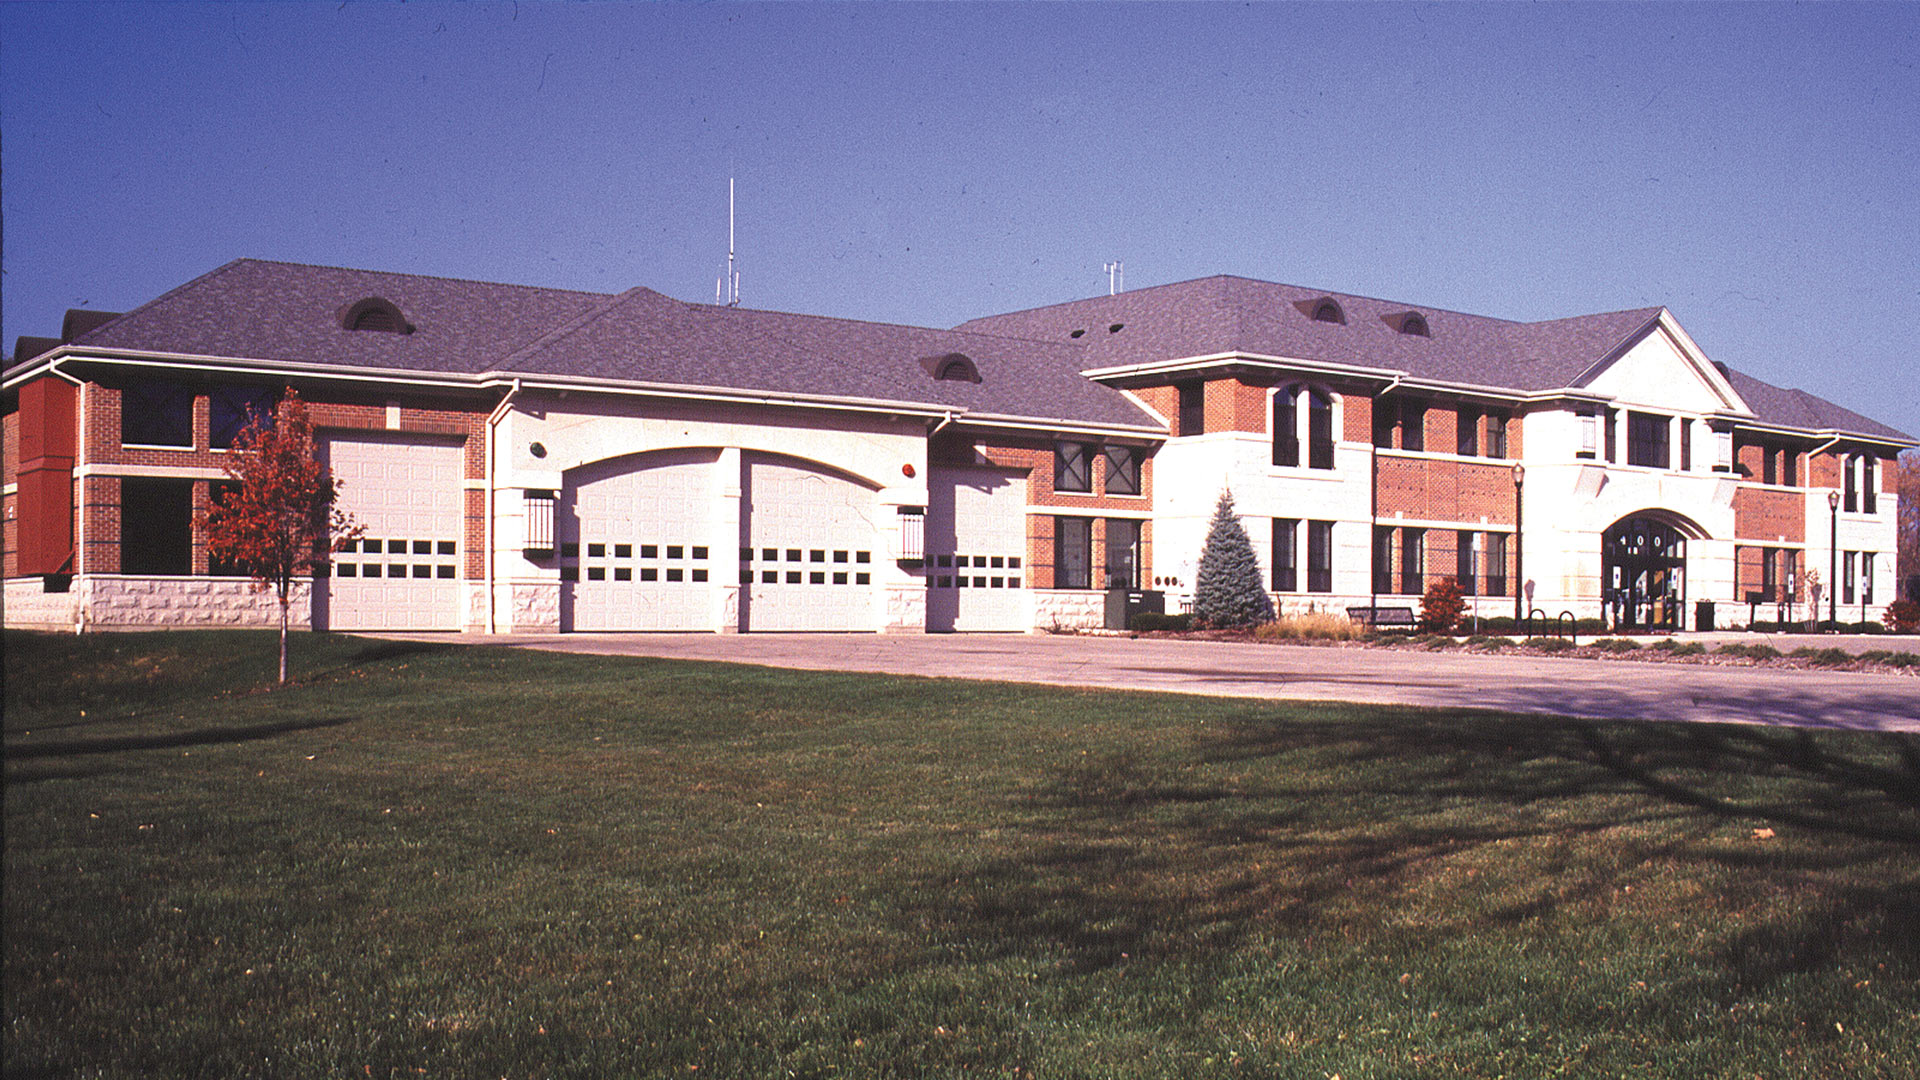 Barrington Public Safety Police and Fire Headquarters